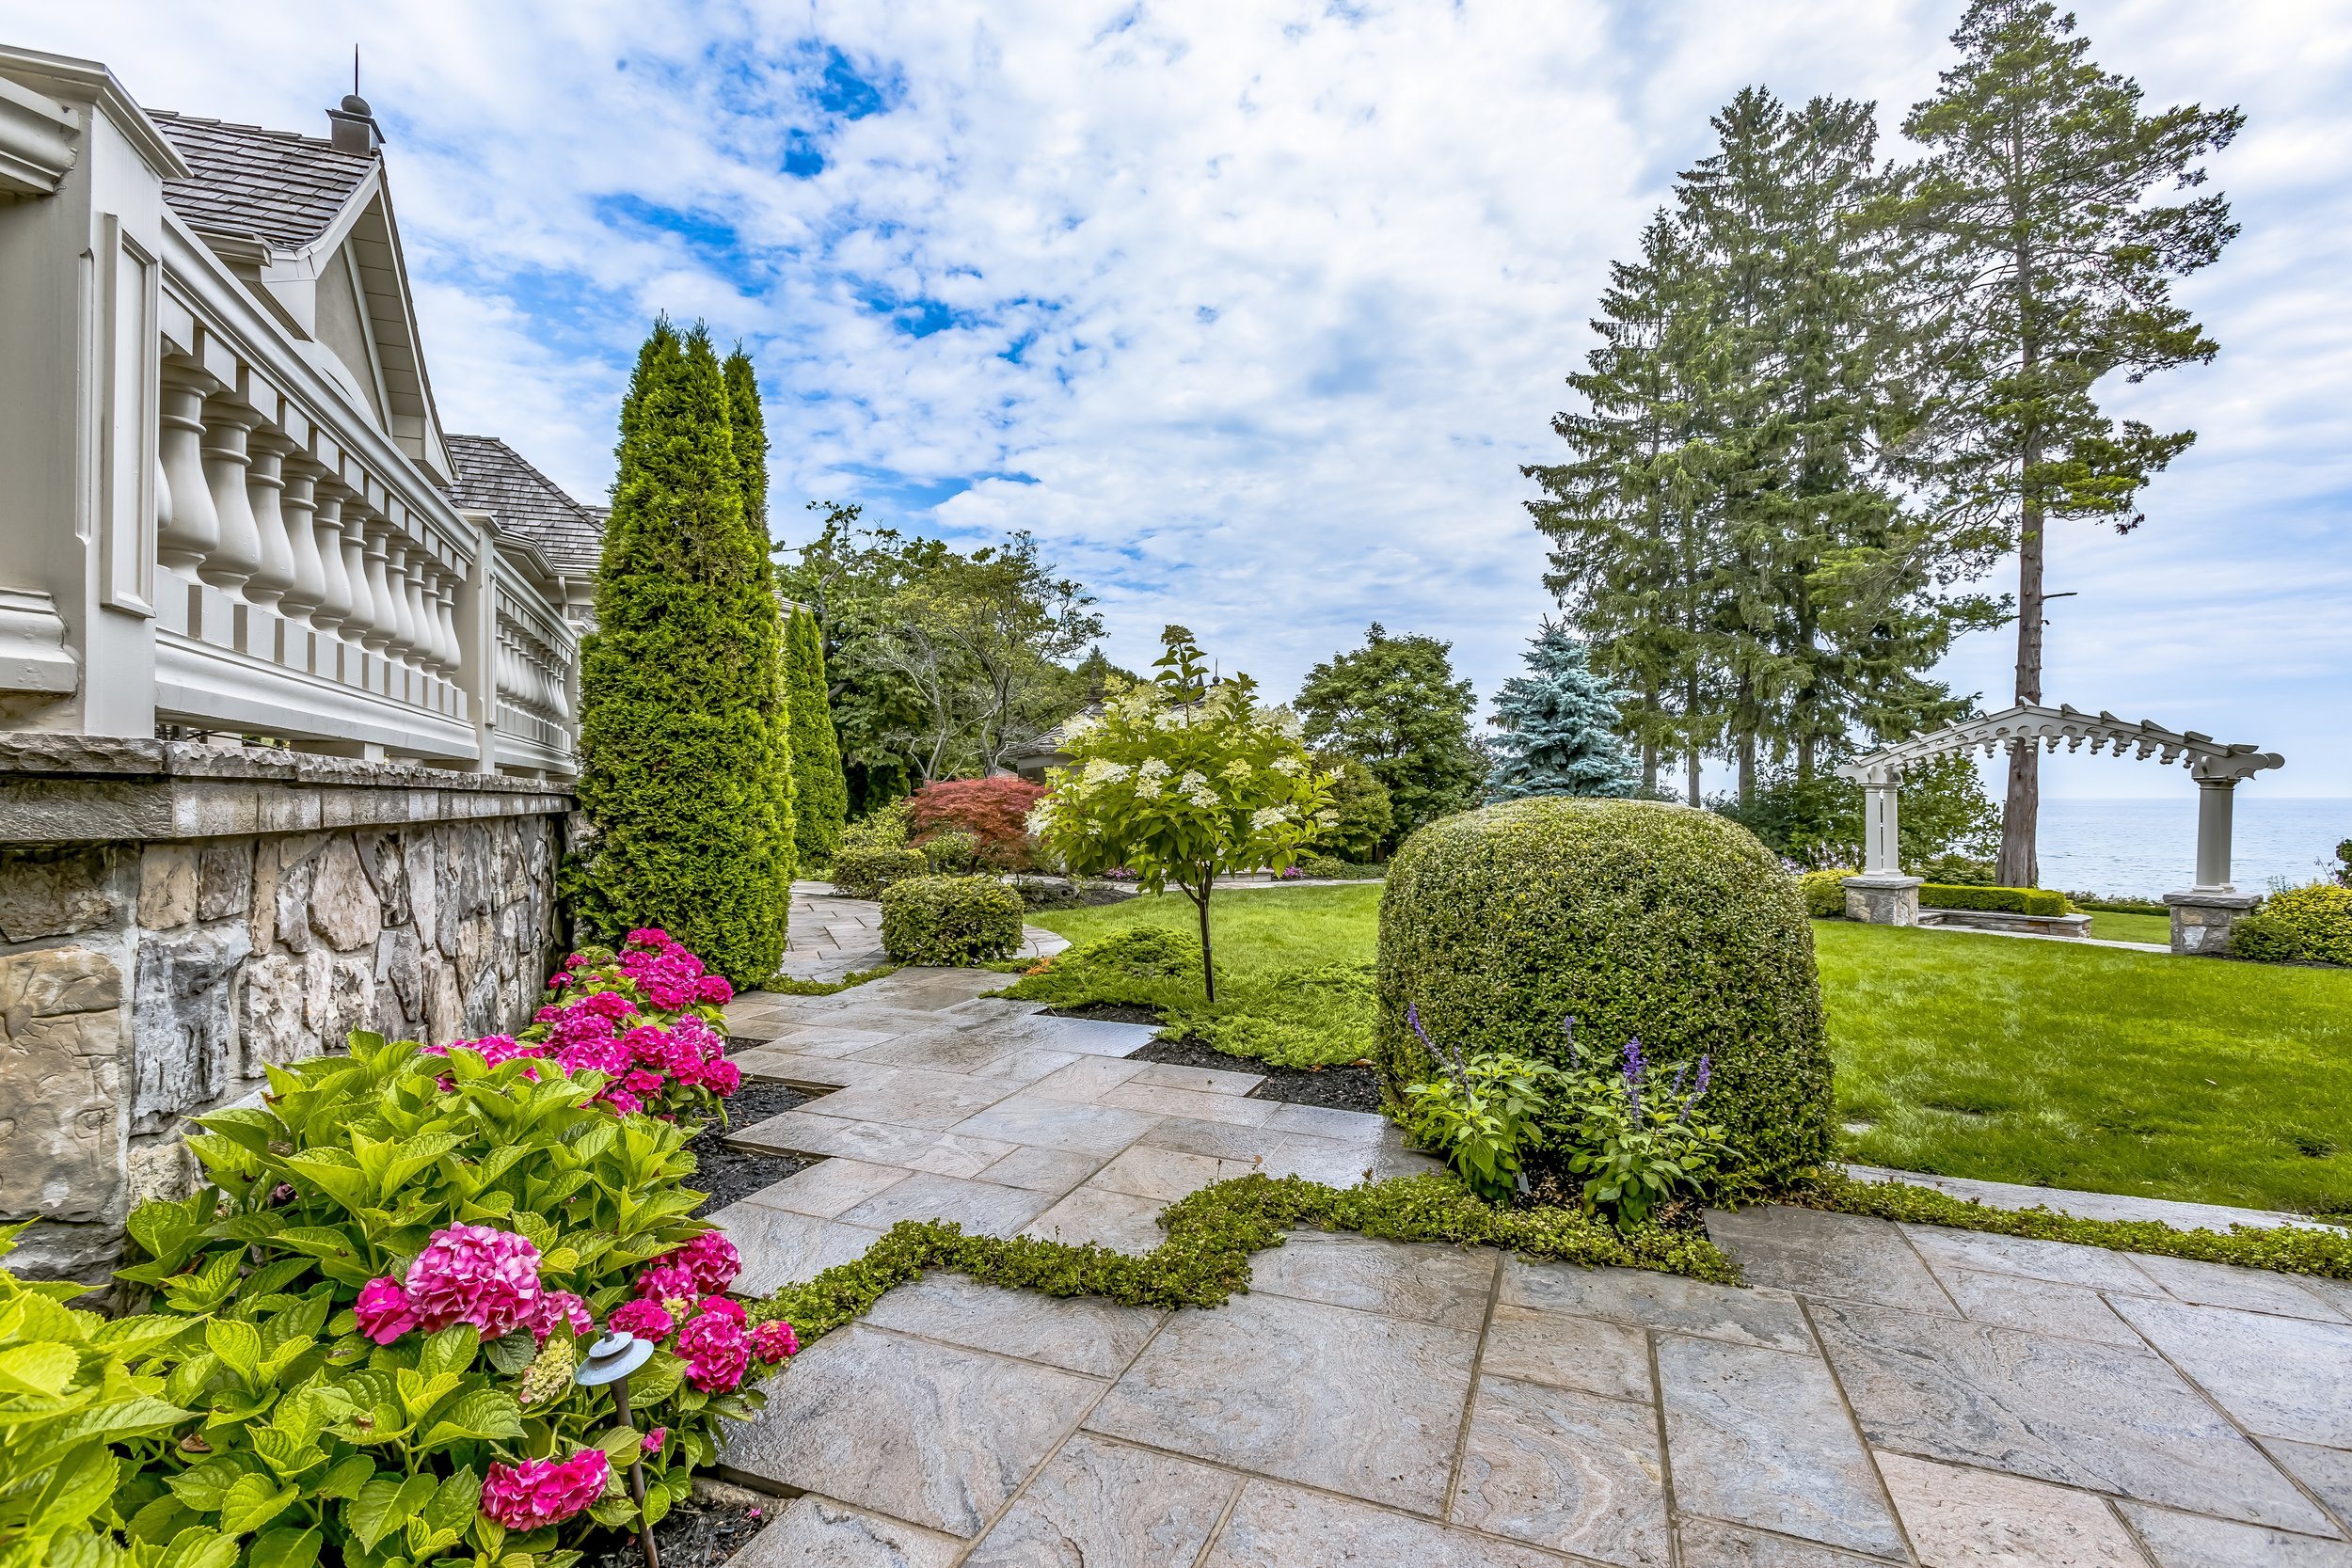 LANDSCAPE PHOTOGRAPHY - Utilize the beautiful work you've done with some amazing photography to help grow your landscaping company.